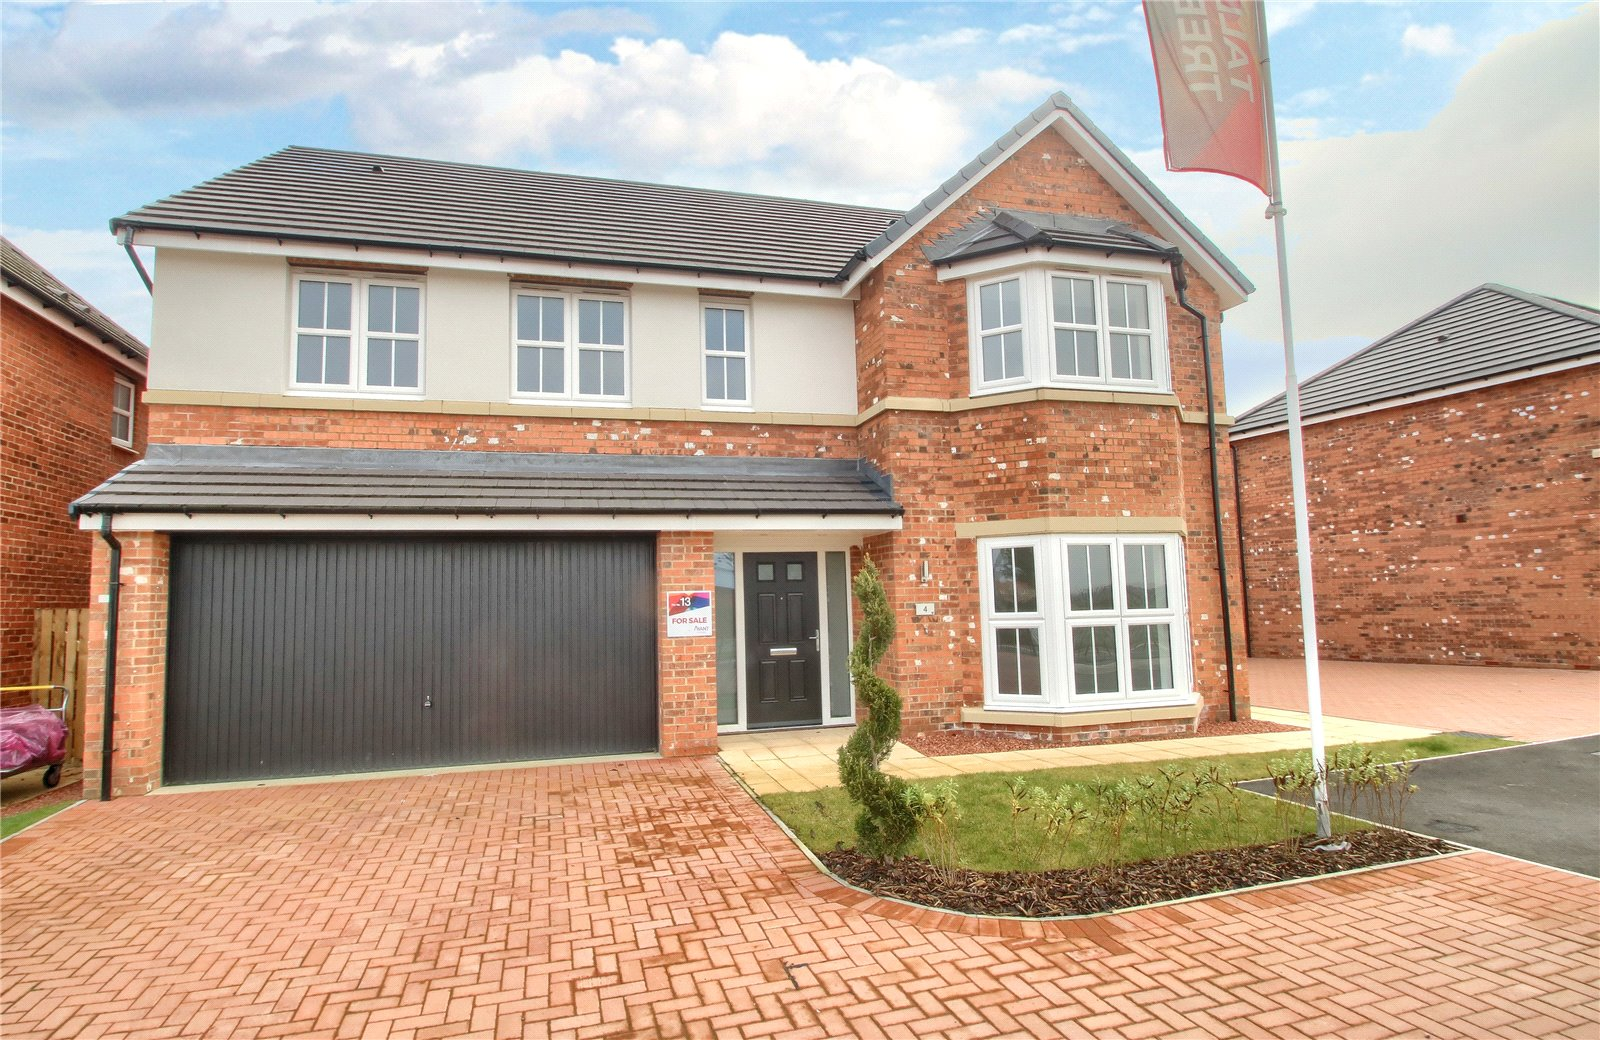 5 bed house for sale in Yew Close, Yarm - Property Image 1